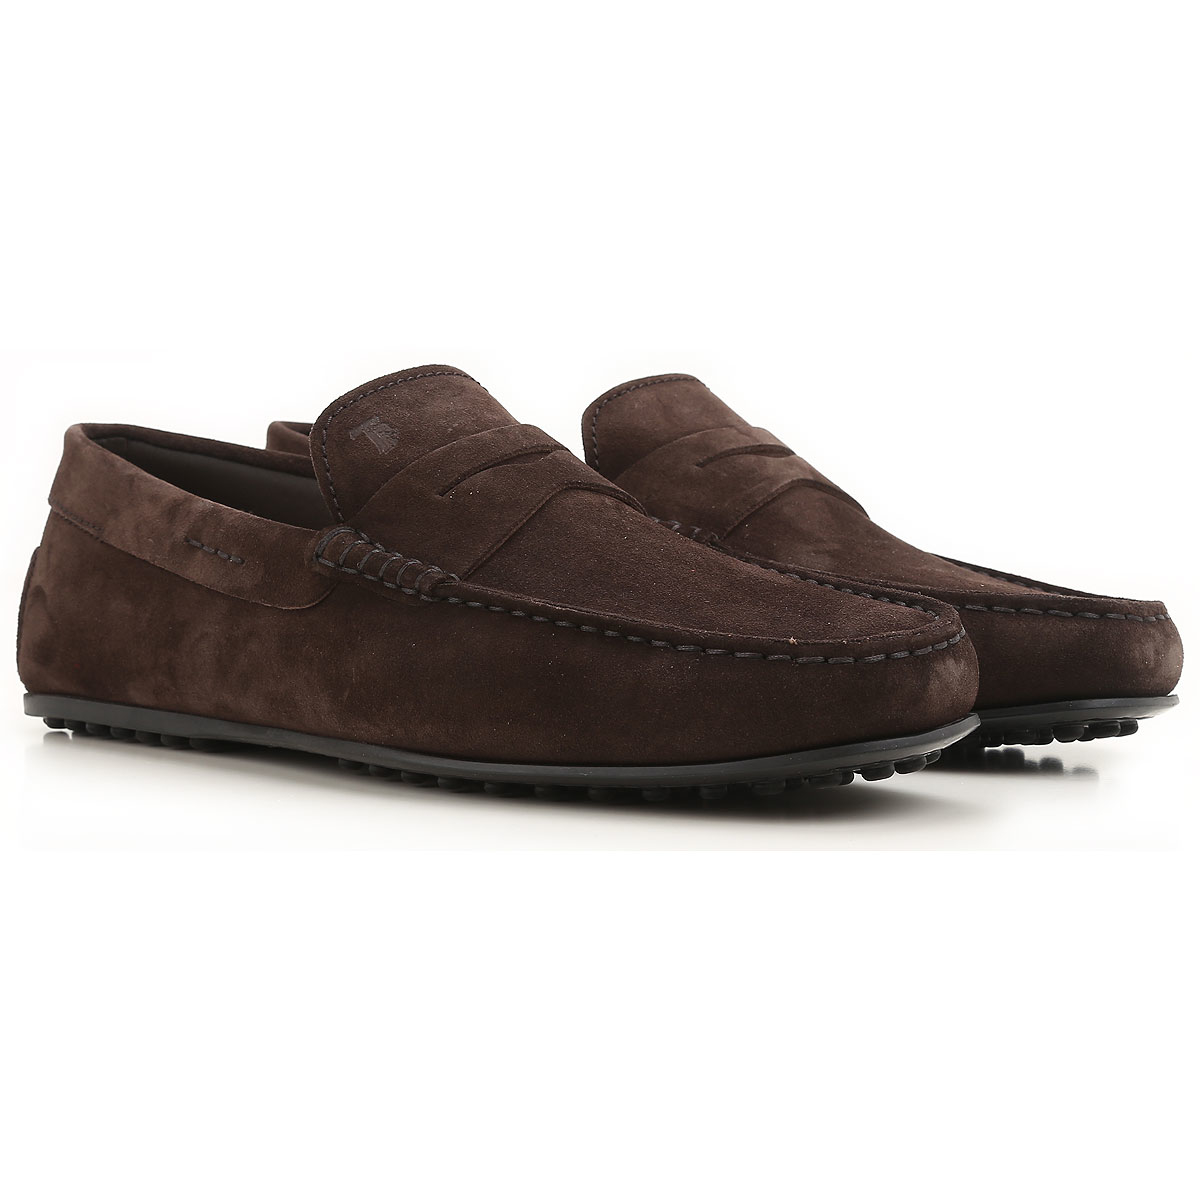 Tods Driver Loafer Shoes for Men Dark Brown Canada - GOOFASH - Mens LOAFERS